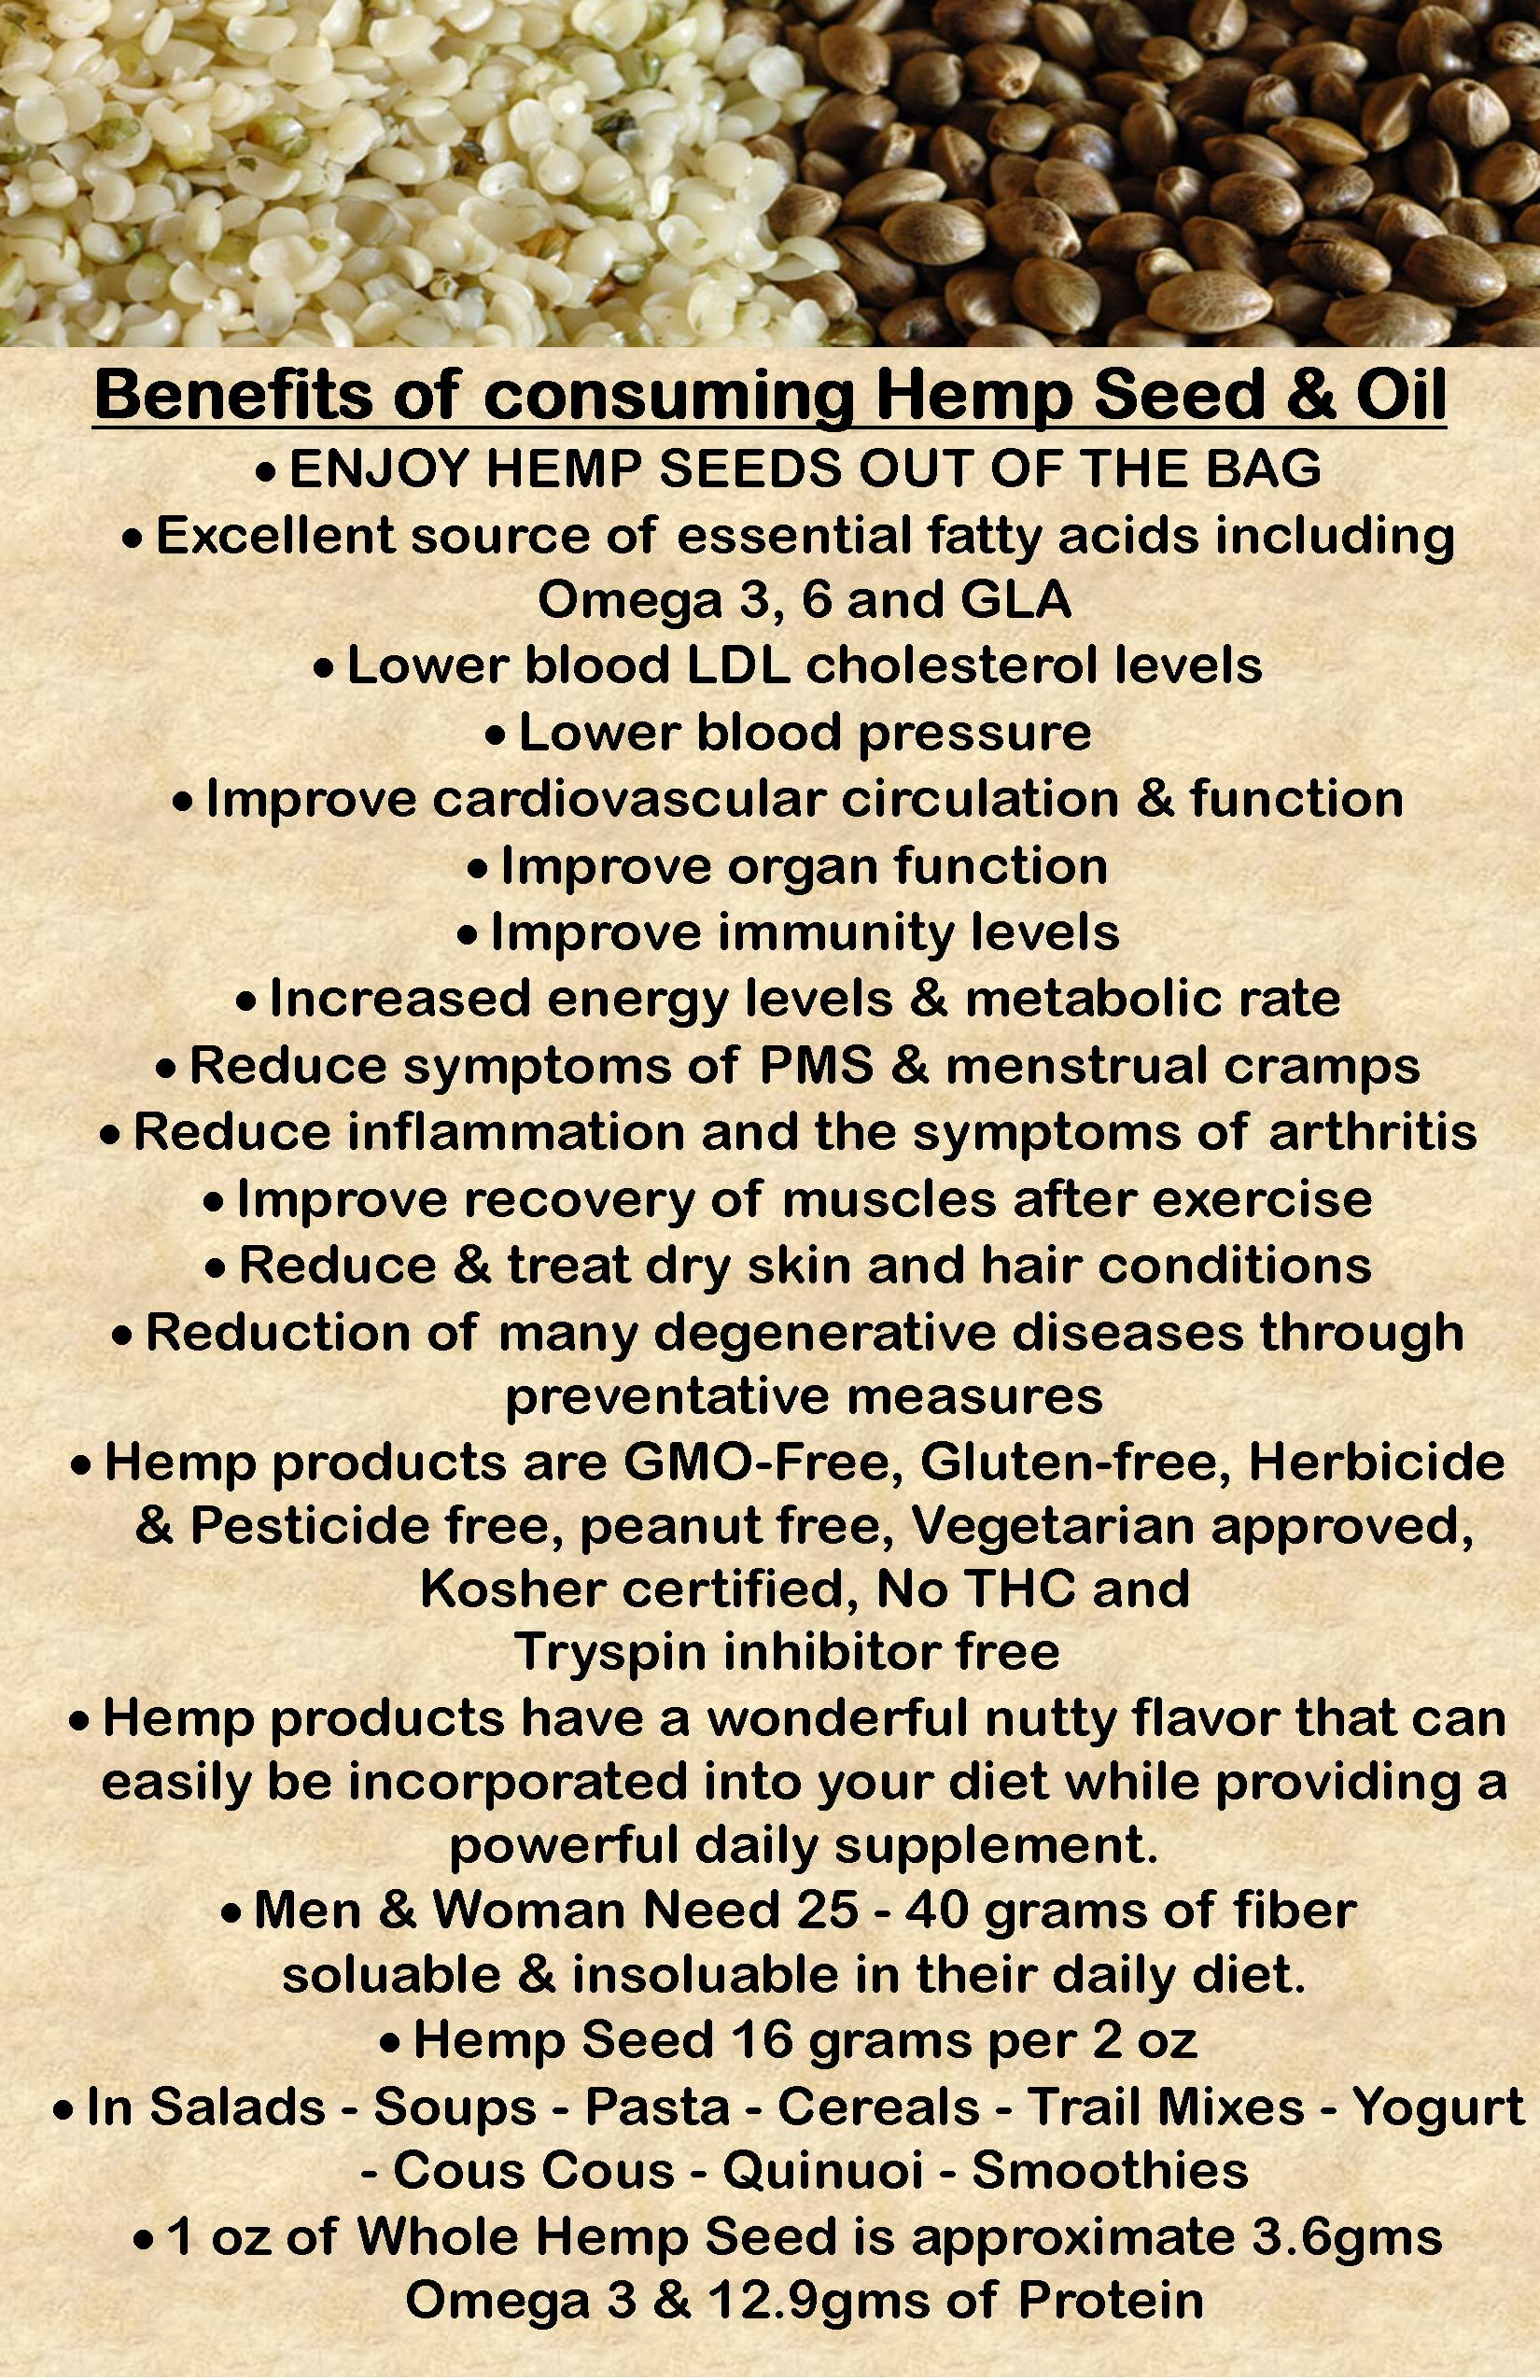 benefits-of-hemp-seed-oil.jpg